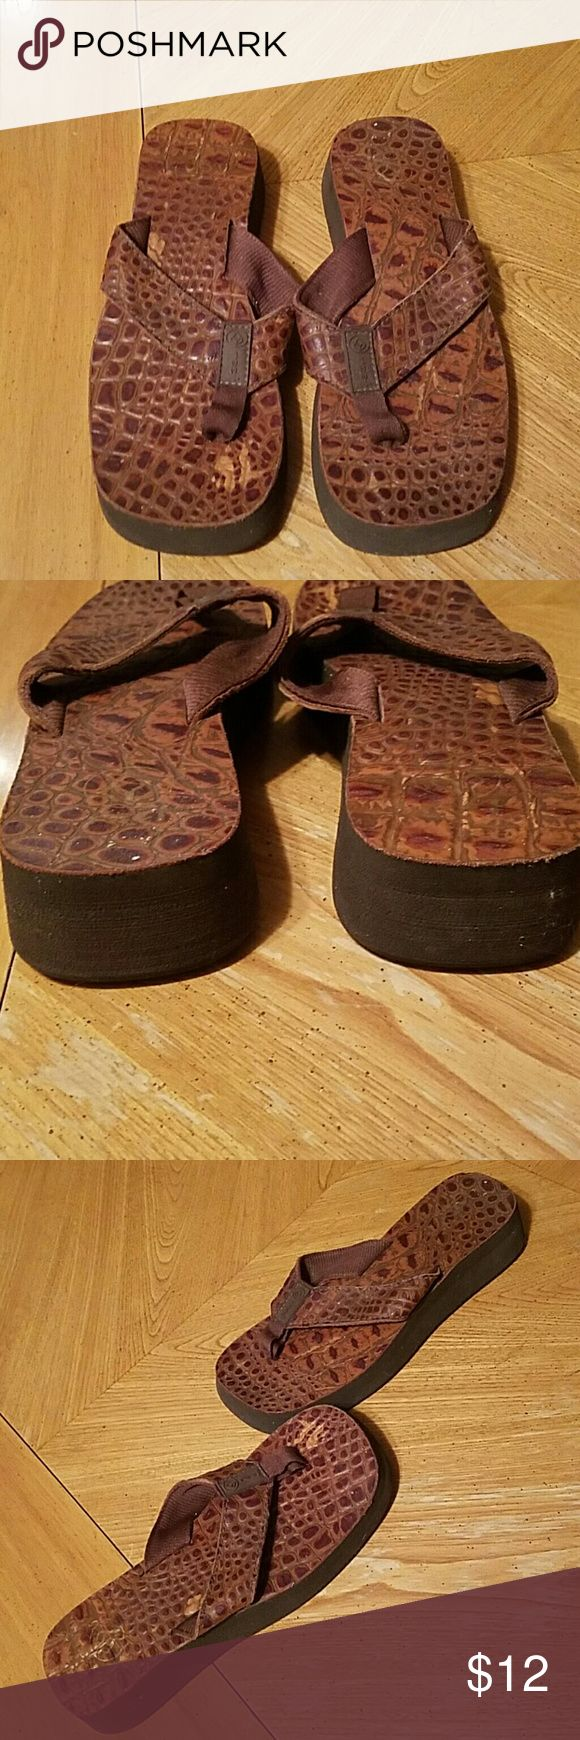 Reef flip flops In used condition Reef flip flops. Cute and comfortable. Reef Shoes Sandals